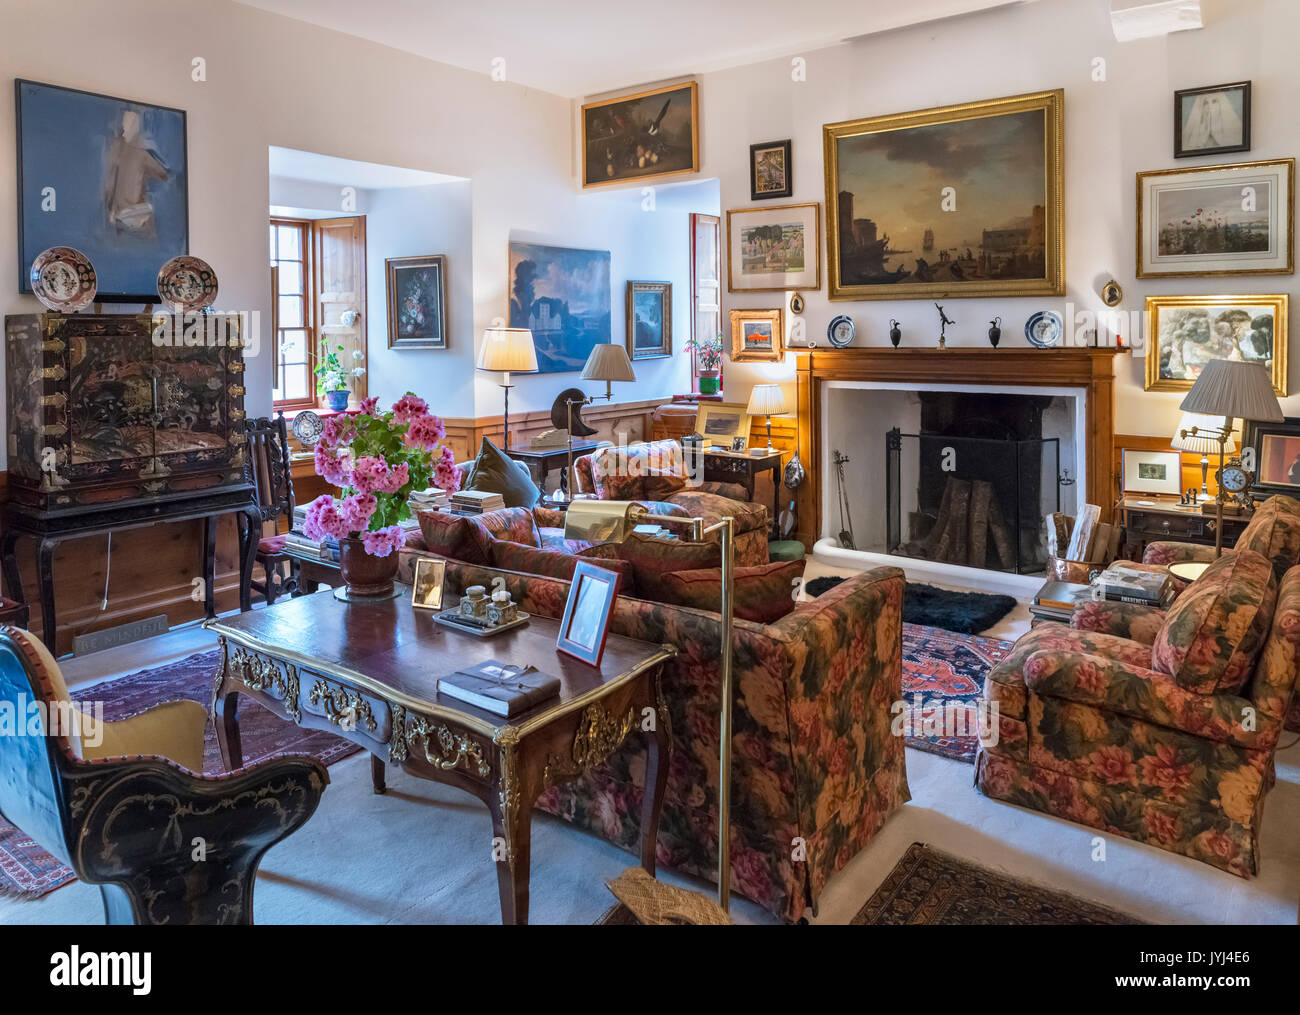 La Chambre de la tour dans le château de Cawdor, Cawdor, Nairn, Highland, Scotland, UK Photo Stock